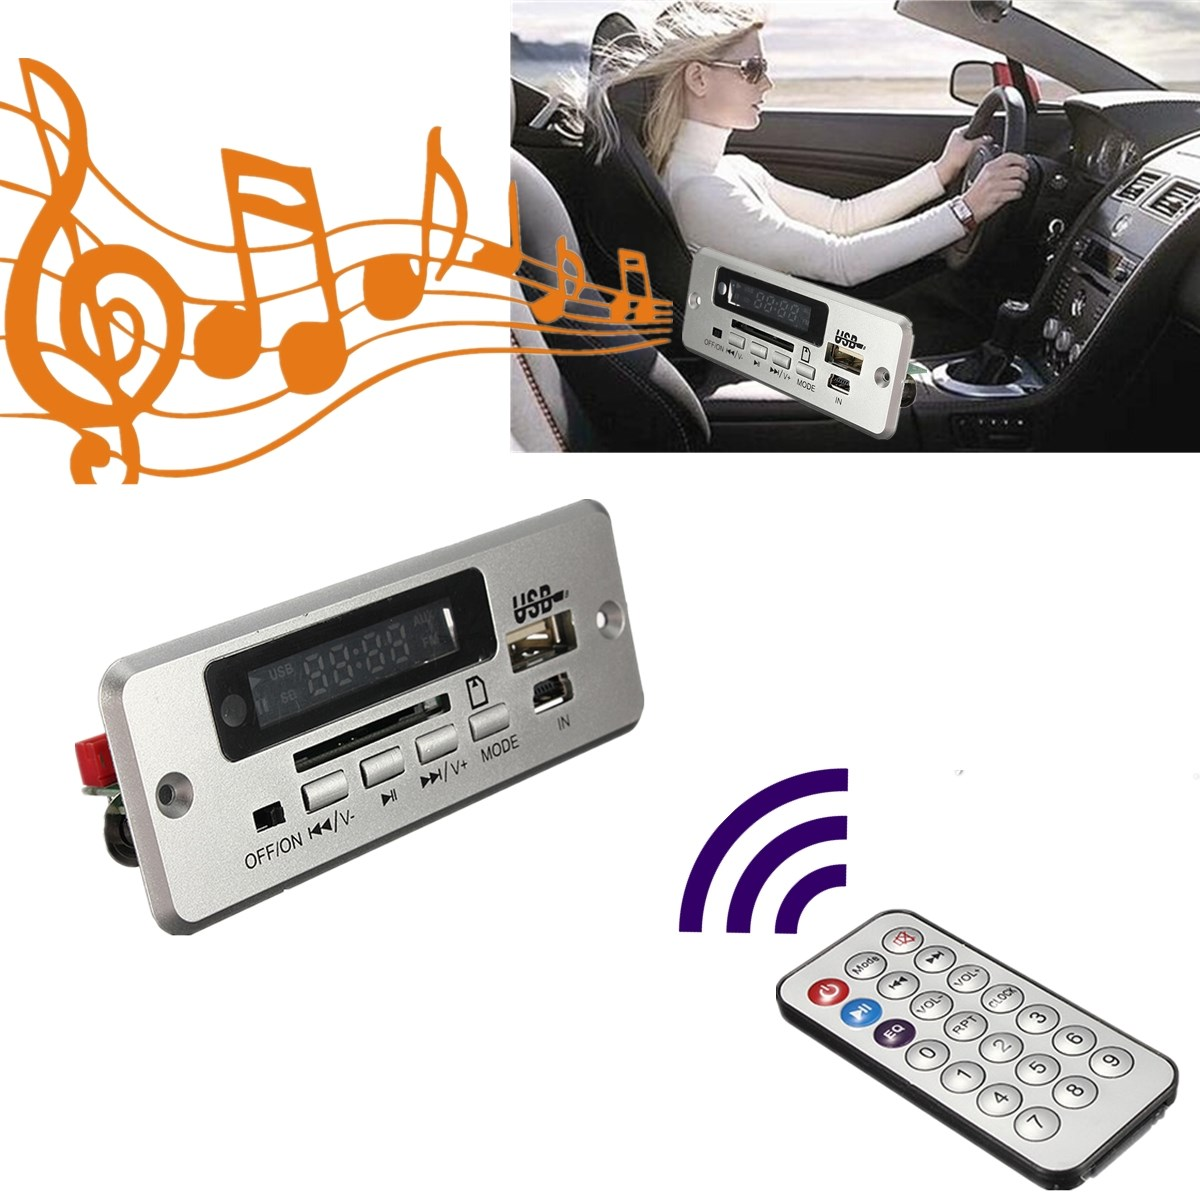 Red Digital LED Display DC 5v USB TF Radio MP3 Decoder Board Wireless Audio Module For Car With Remote controller DIY Modules(China)